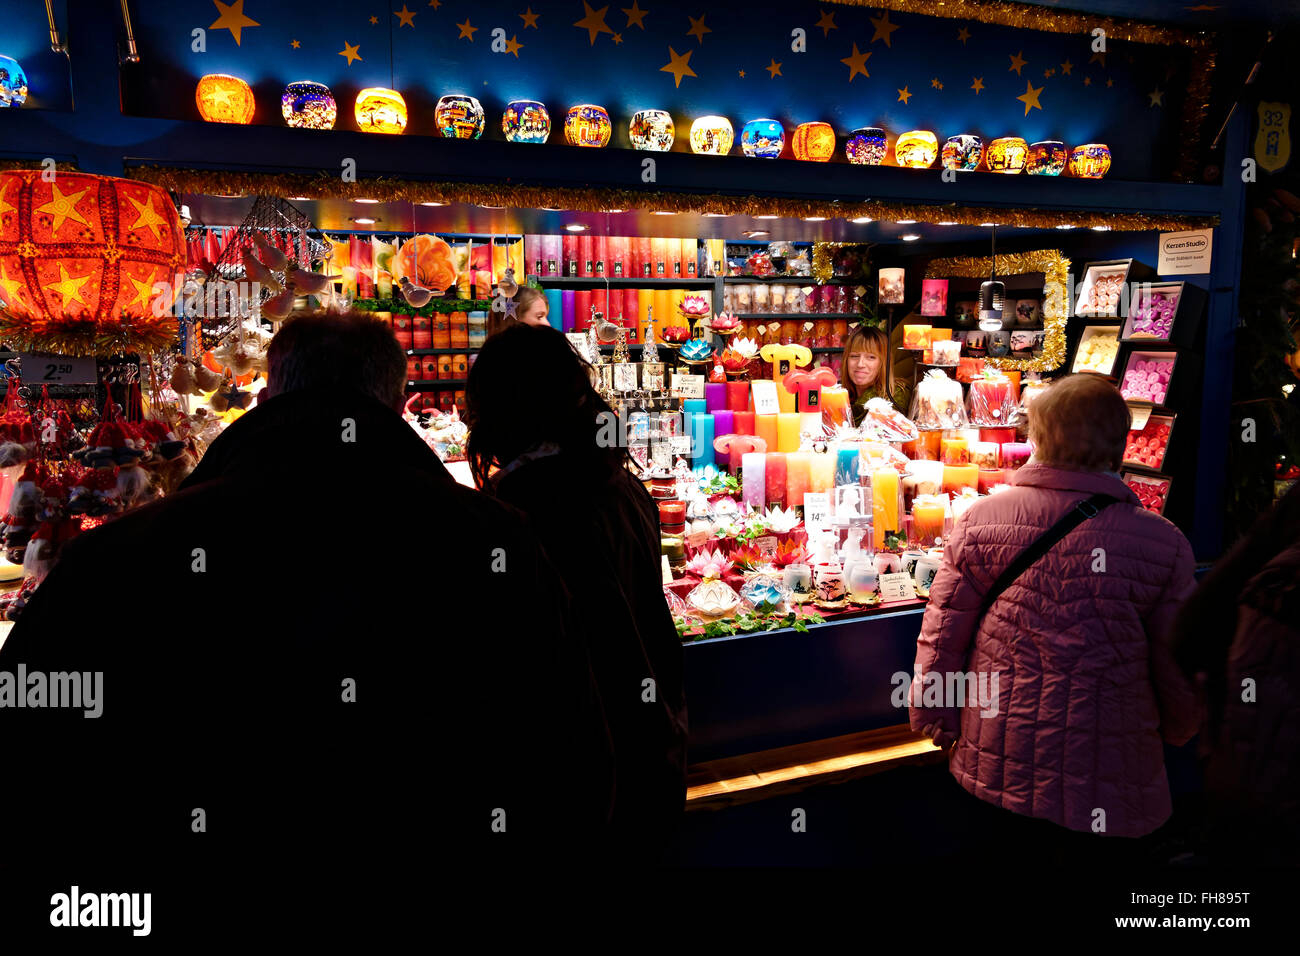 Shoppers at the German Christmas markets, Munich, Upper Bavaria, Germany, Europe. - Stock Image